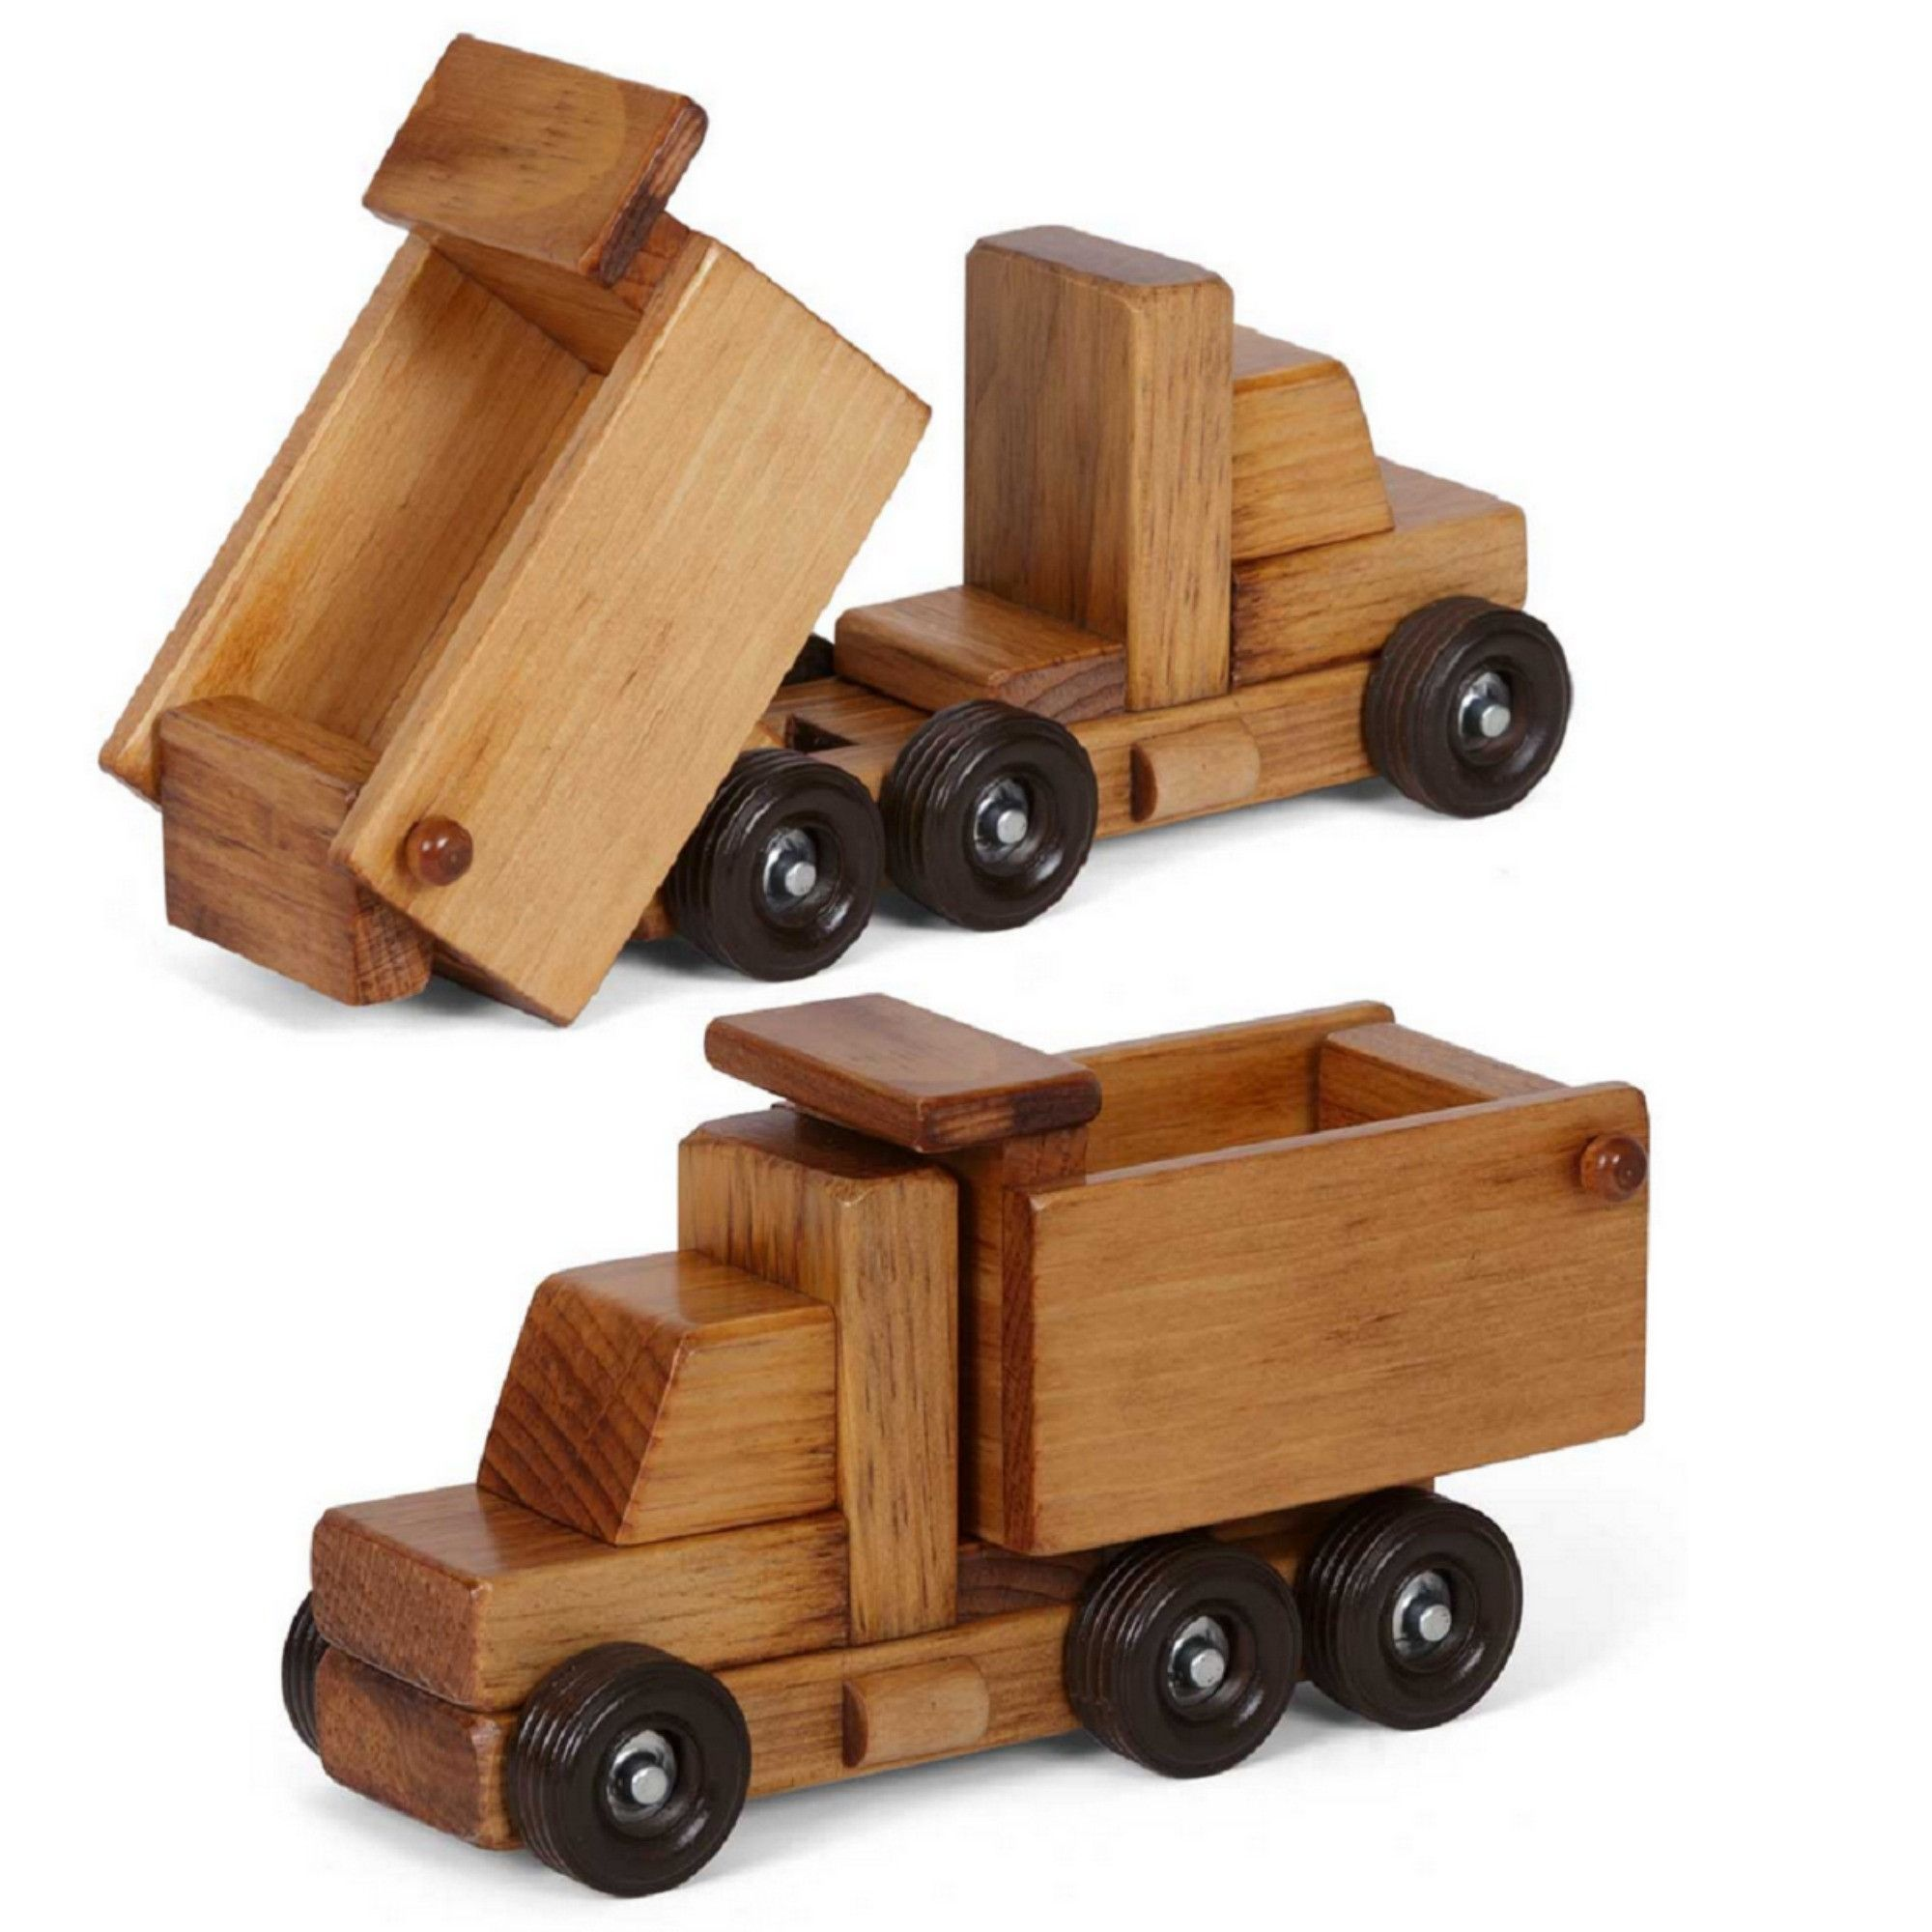 amish handmade dump truck working wood toy this is an excellent working toy dump truck made with unrivaled a beautiful piece for play and - Toy Dump Trucks